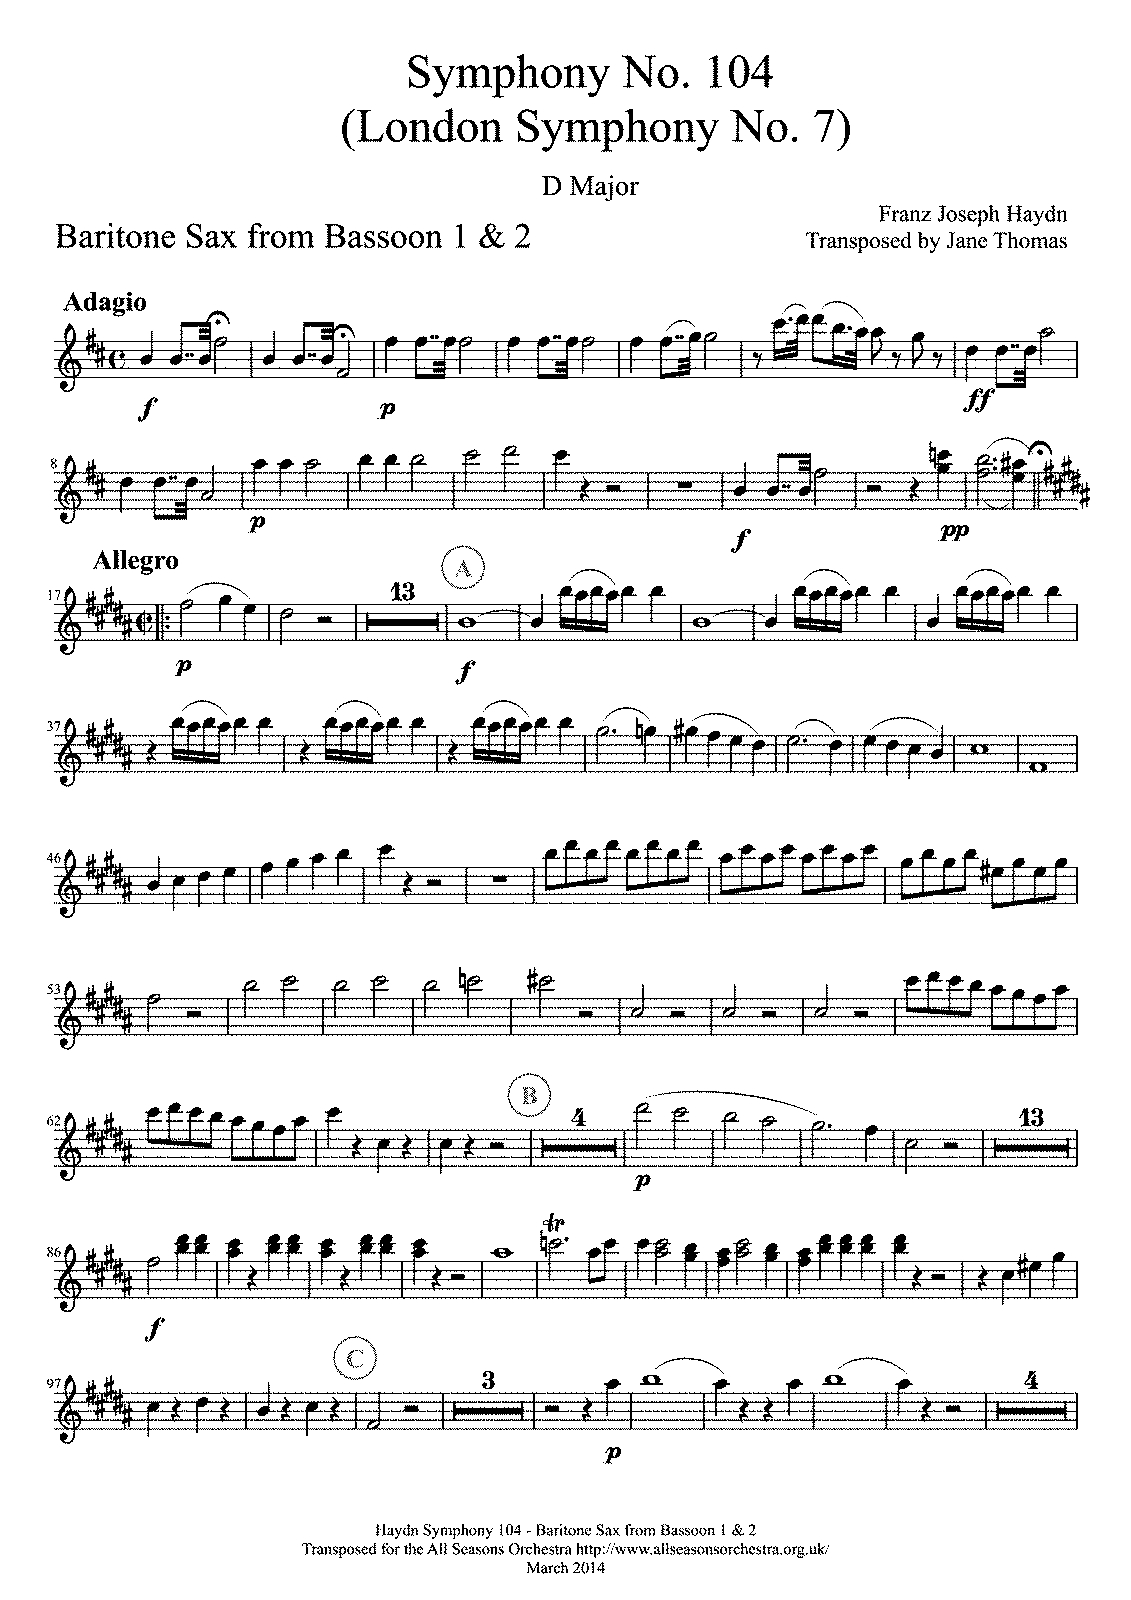 PMLP07948-Haydn - Symphony 104 - Baritone sax from Bassoon 1 and 2.pdf